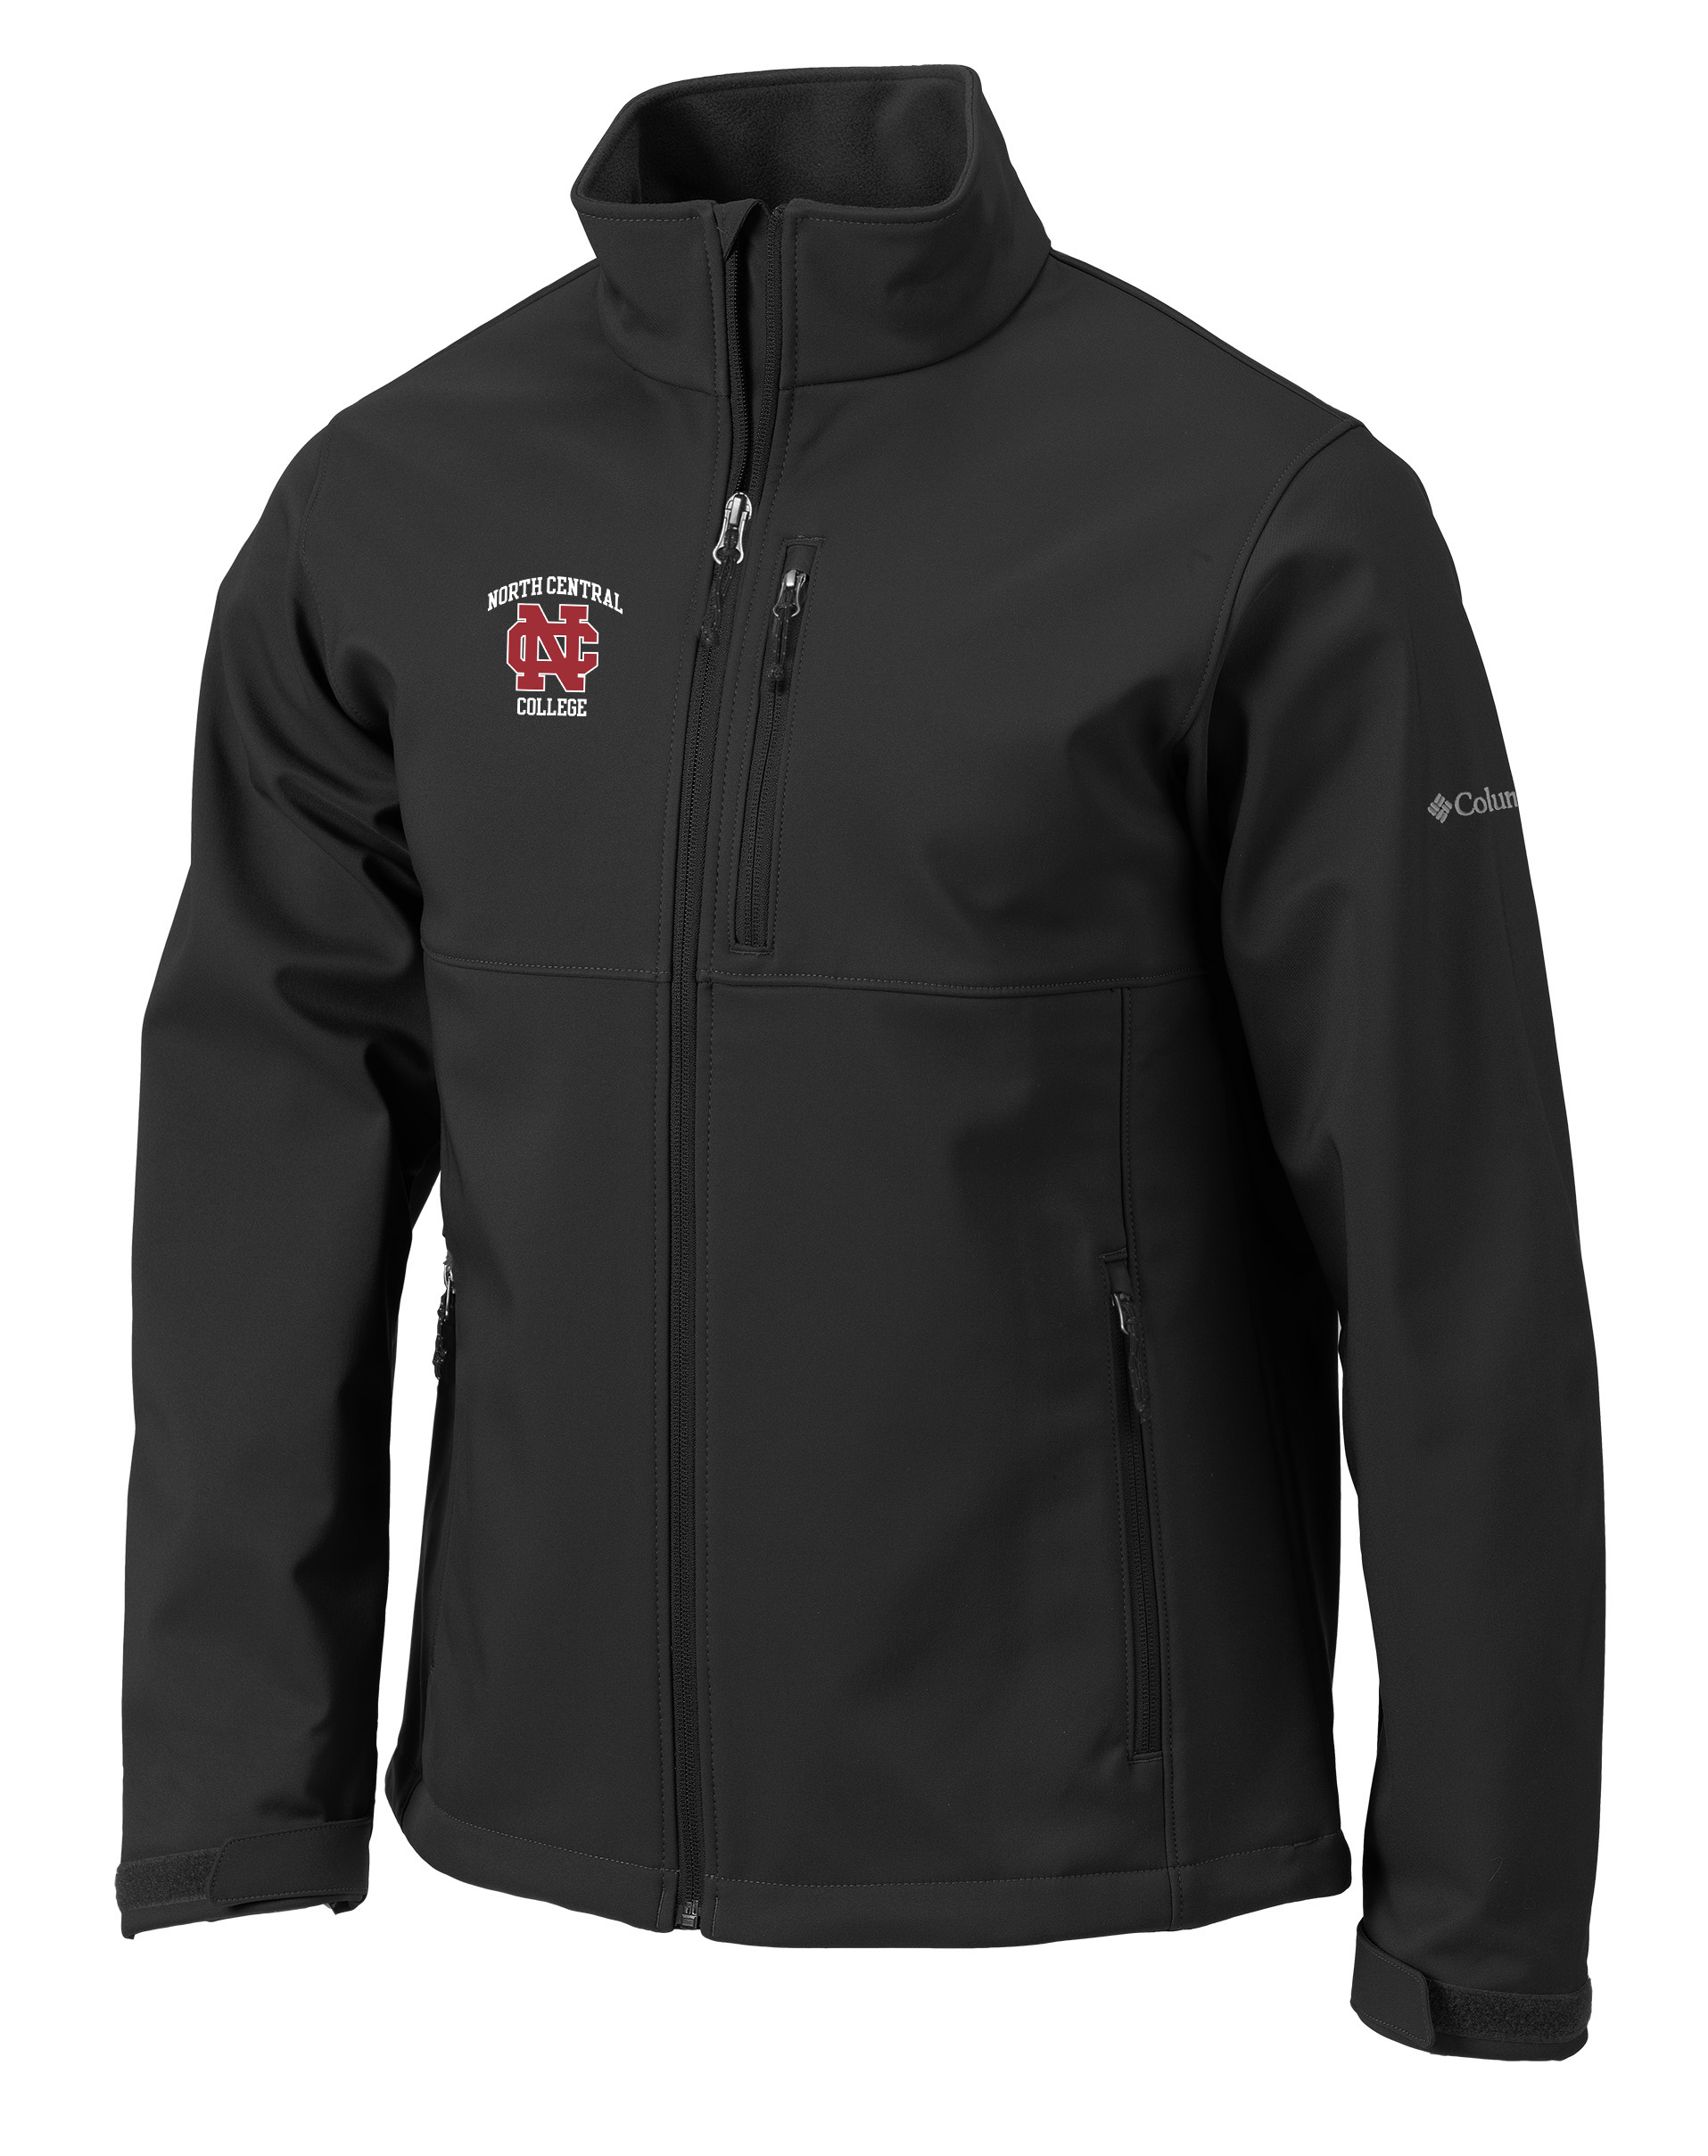 Image for the North Central College Columbia Ascender SoftShell Jacket product